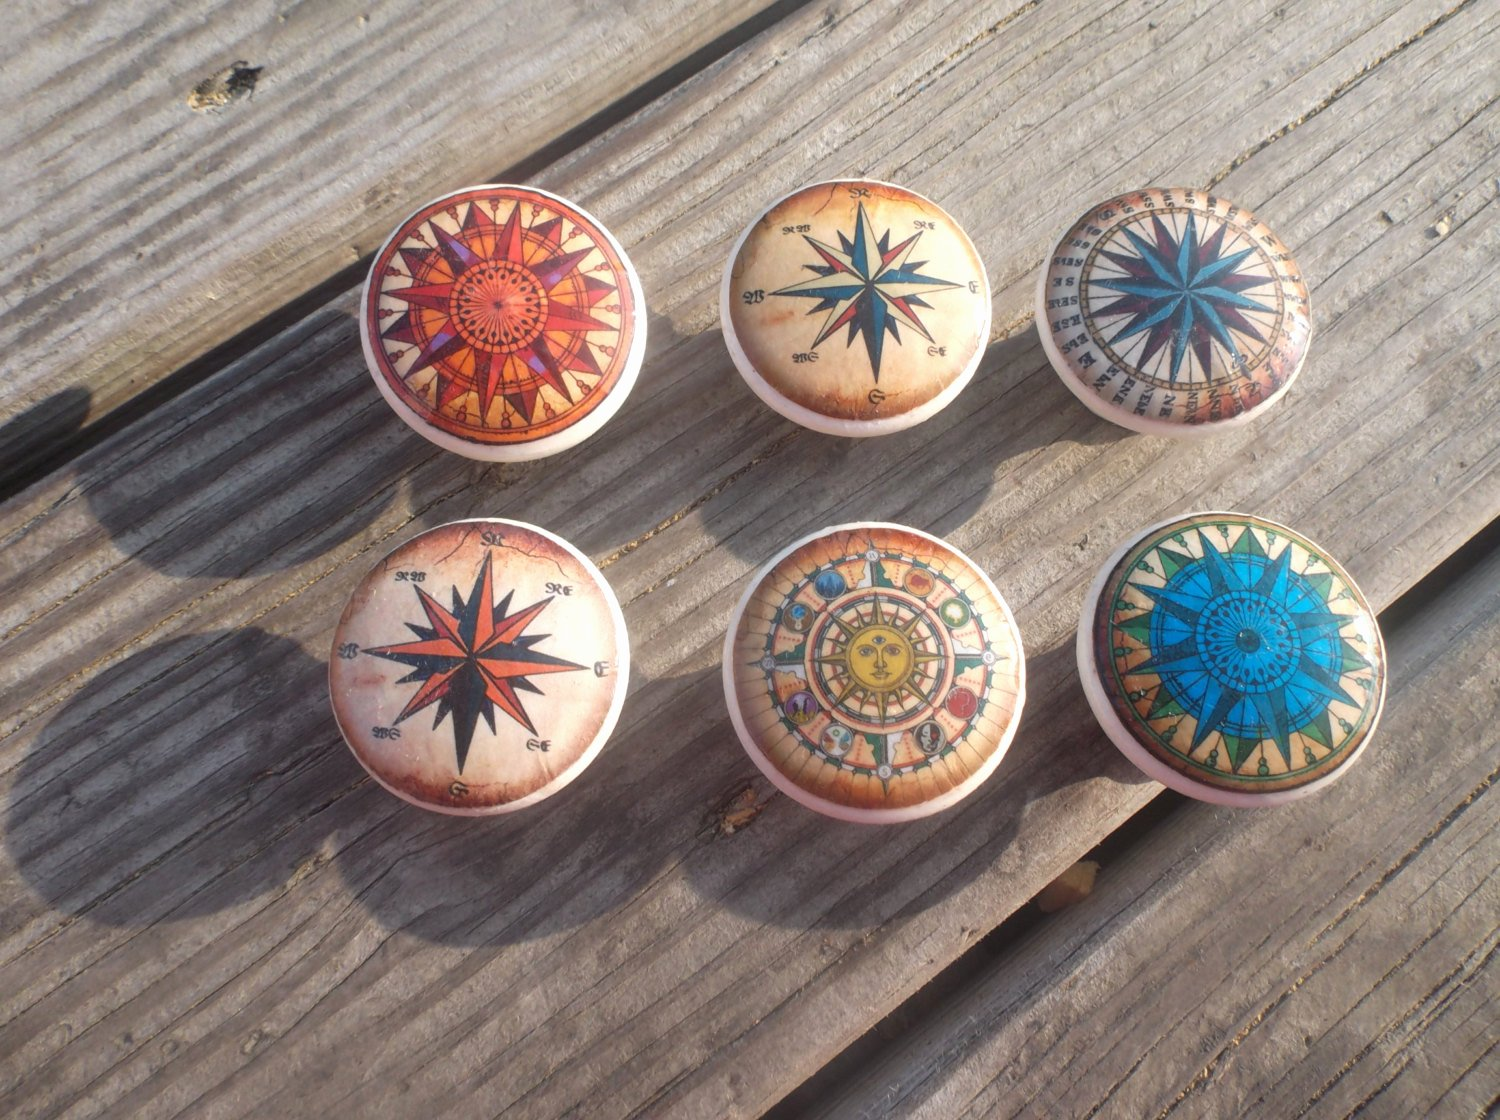 Compass Rose Print Out Best Of Pass Rose Print 1 5 Dresser Drawer Knob by Twistedrdesign